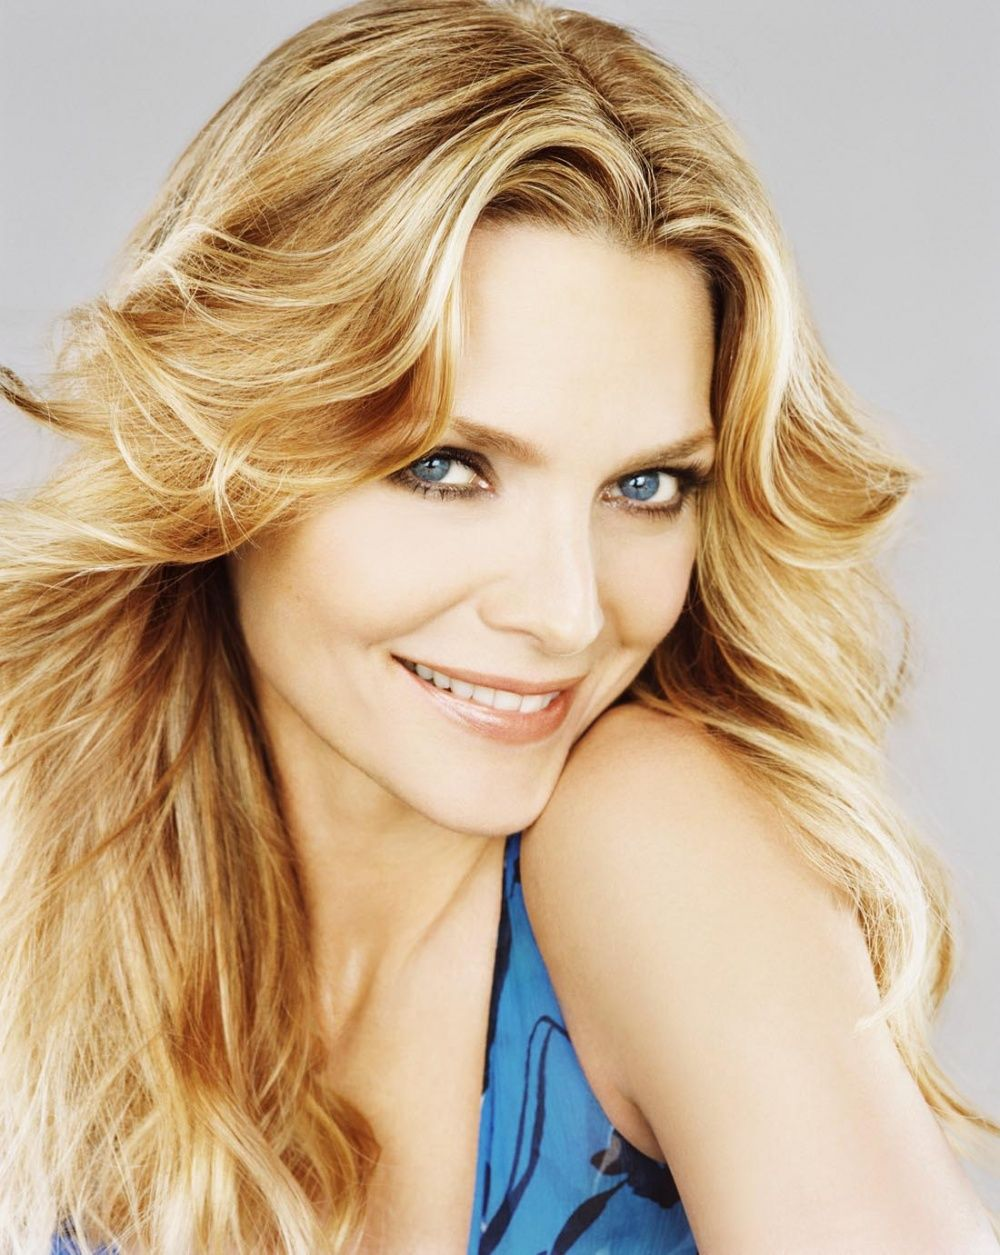 photoshoots michelle pfeiffer michelle pfeiffer